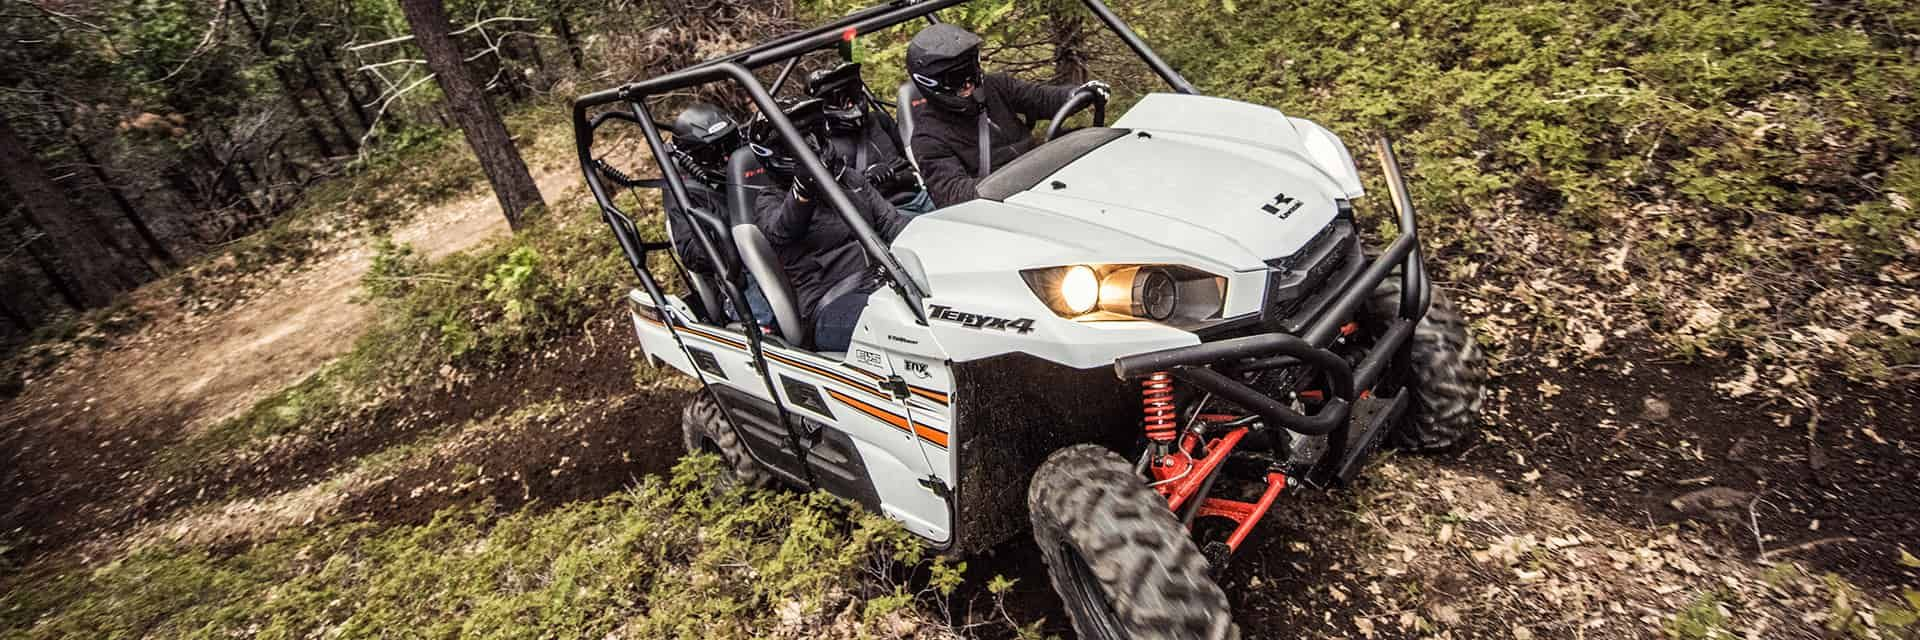 Midwest Sports Center Atv Utv Motorcycle Dealers In